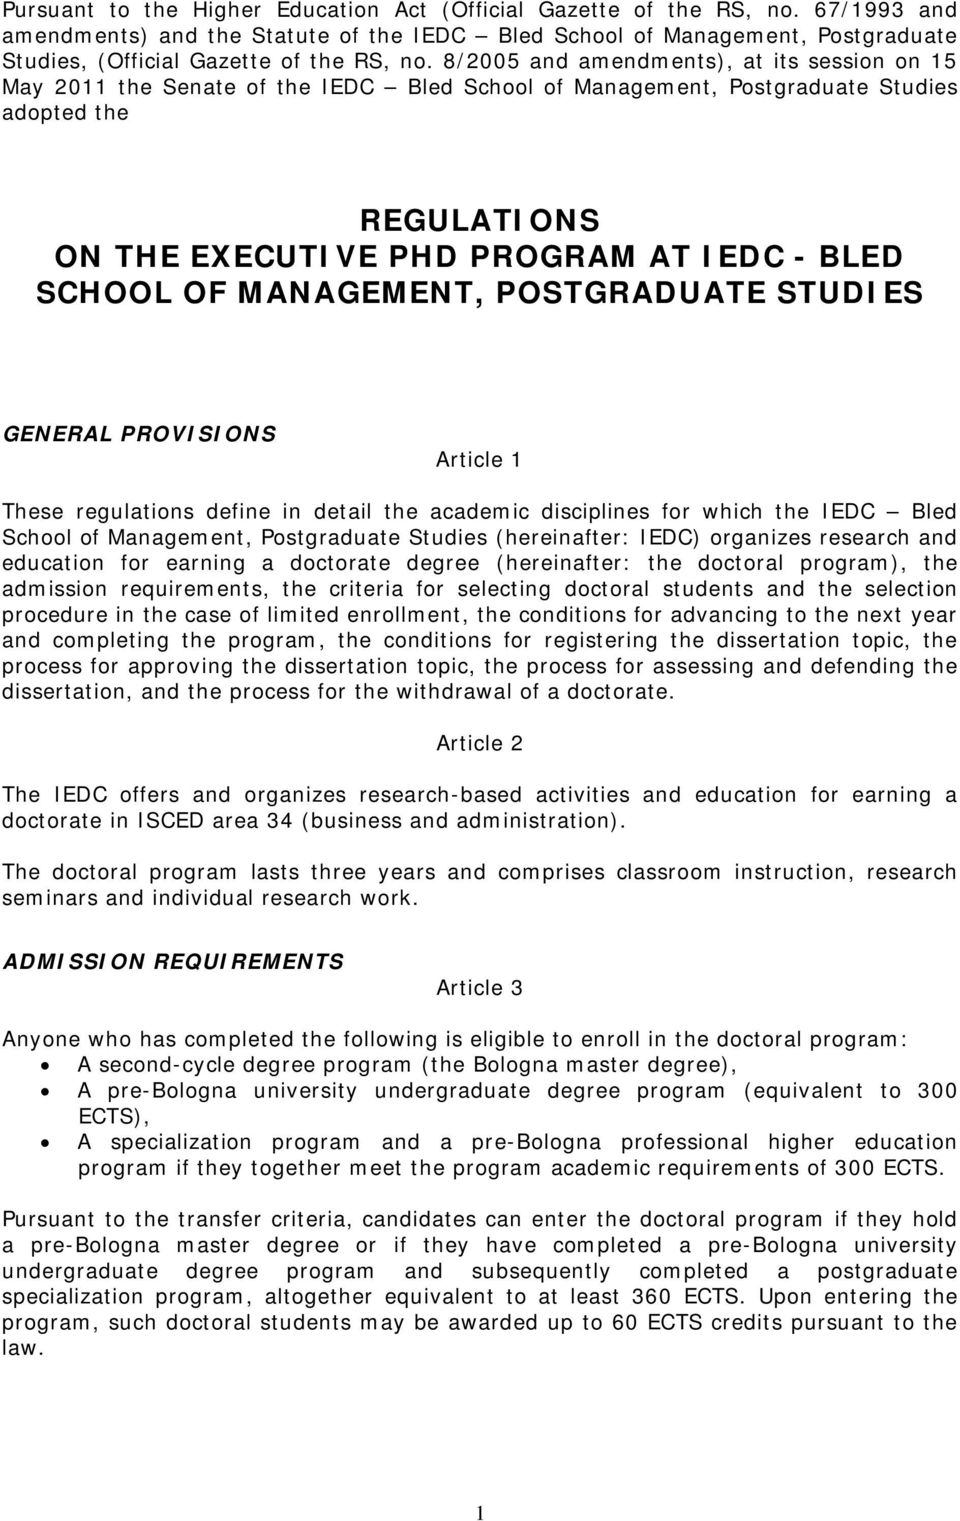 8/2005 and amendments), at its session on 15 May 2011 the Senate of the IEDC Bled School of Management, Postgraduate Studies adopted the REGULATIONS ON THE EXECUTIVE PHD PROGRAM AT IEDC - BLED SCHOOL